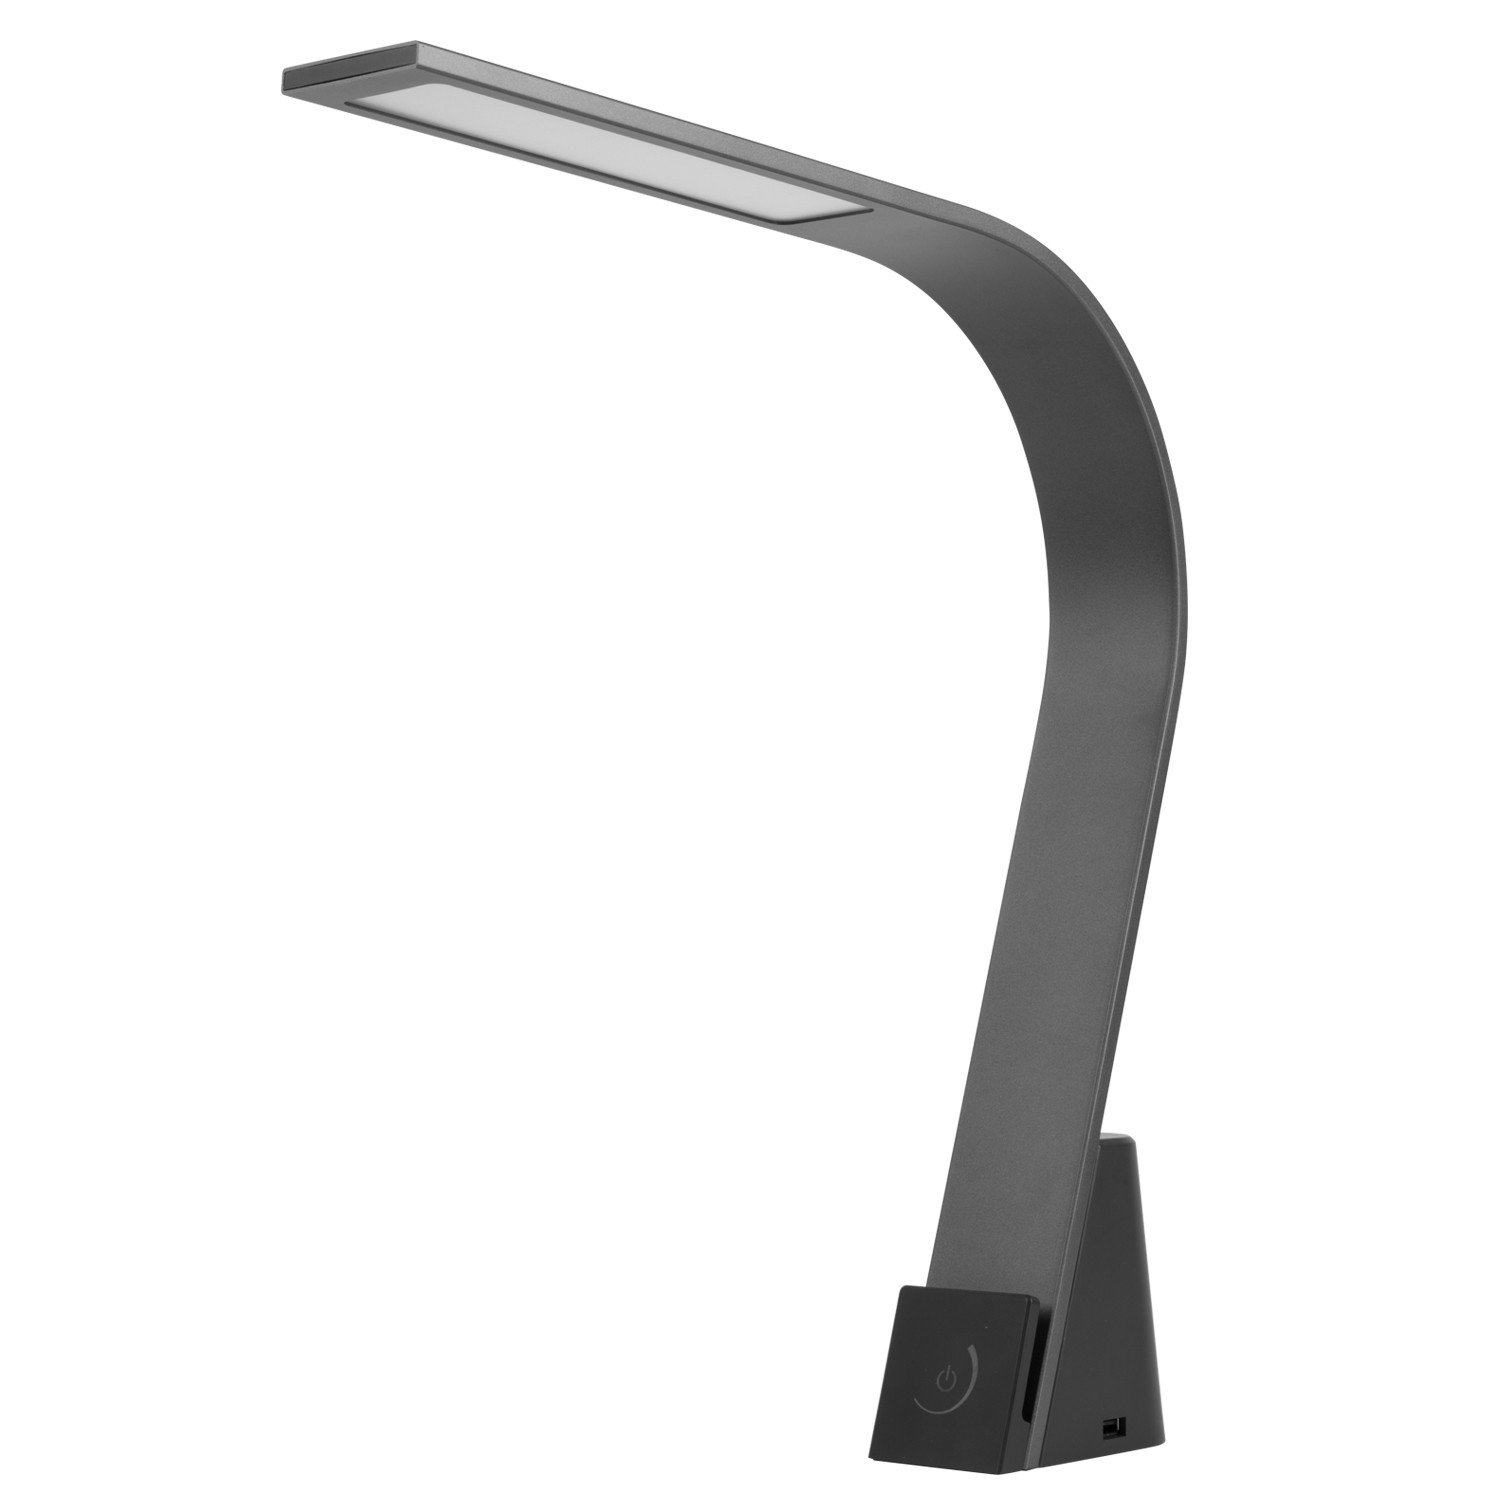 Lumesty Phoenix LED Integrated Desk Lamp, Matte Graphite Finish, Integrated Phone Holder, 2 Fast Charging 2.1A USB Ports, On/Off/Dimmable Touch Switch, 30068